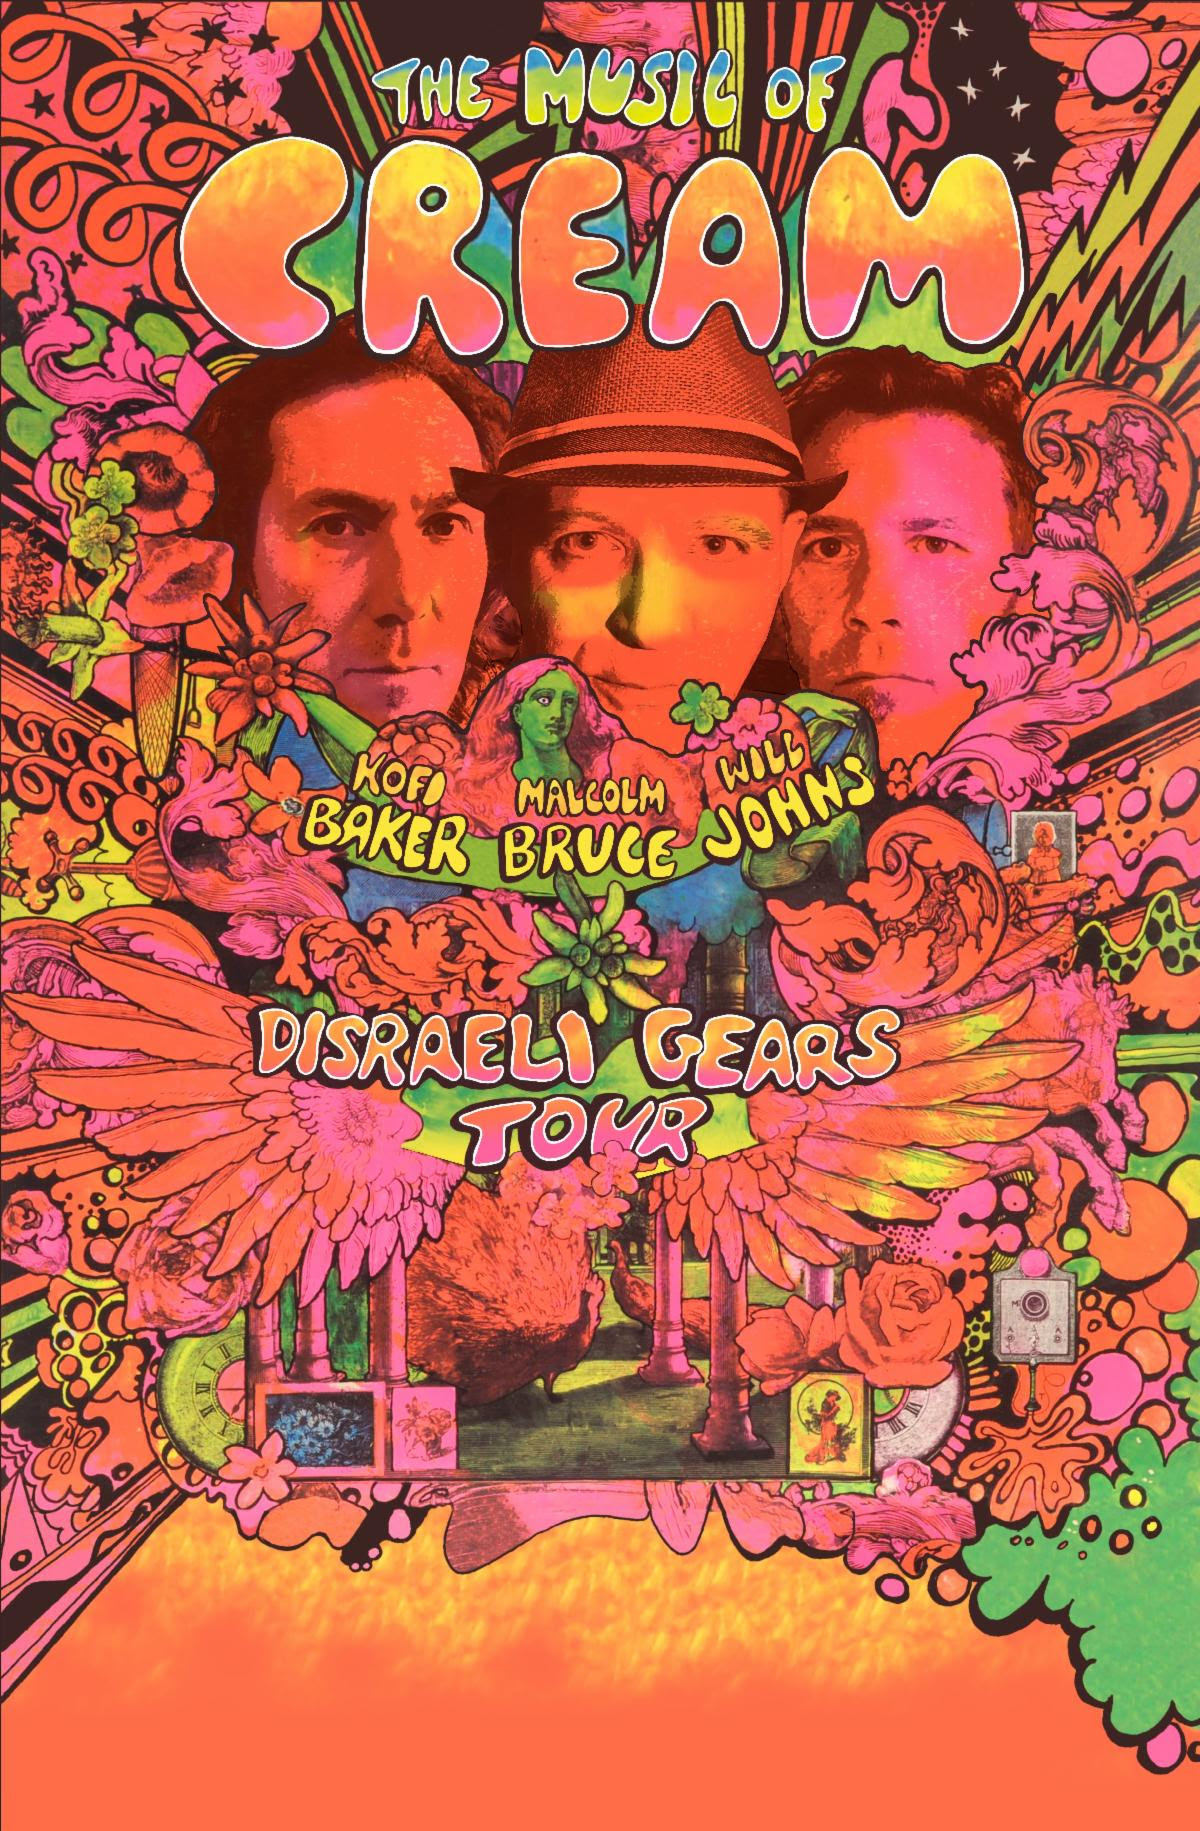 THE MUSIC OF CREAM Announces 2020 Disraeli Gears Tour